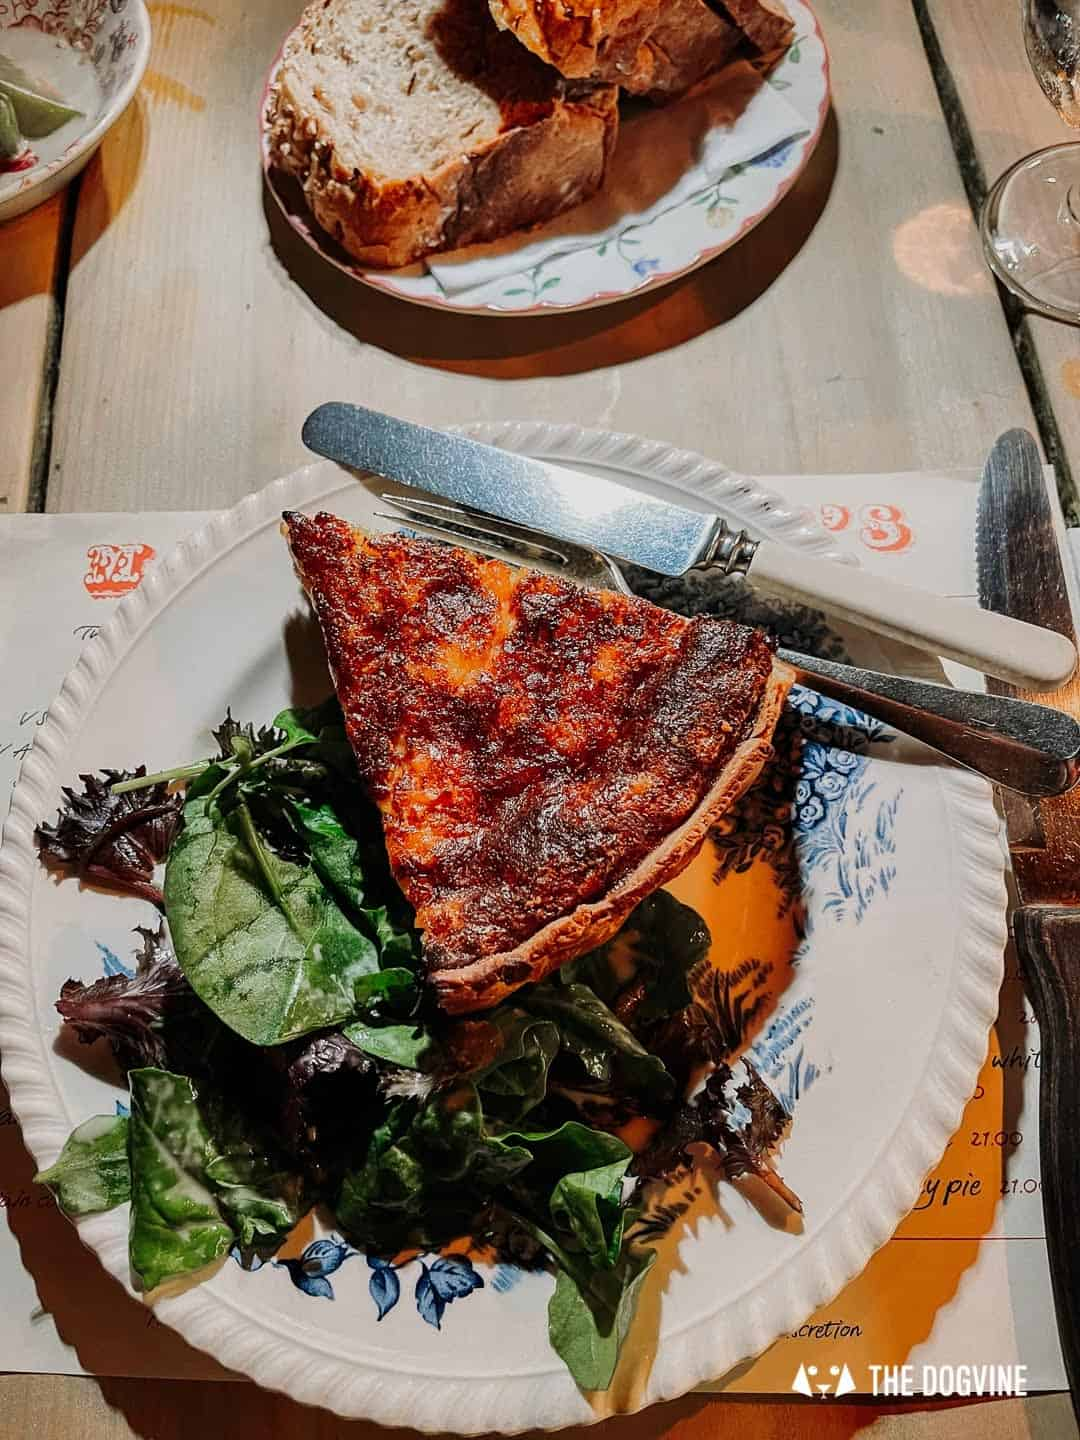 The Cheese and Leek Tart at Maggie Jones's Restaurant is delicious